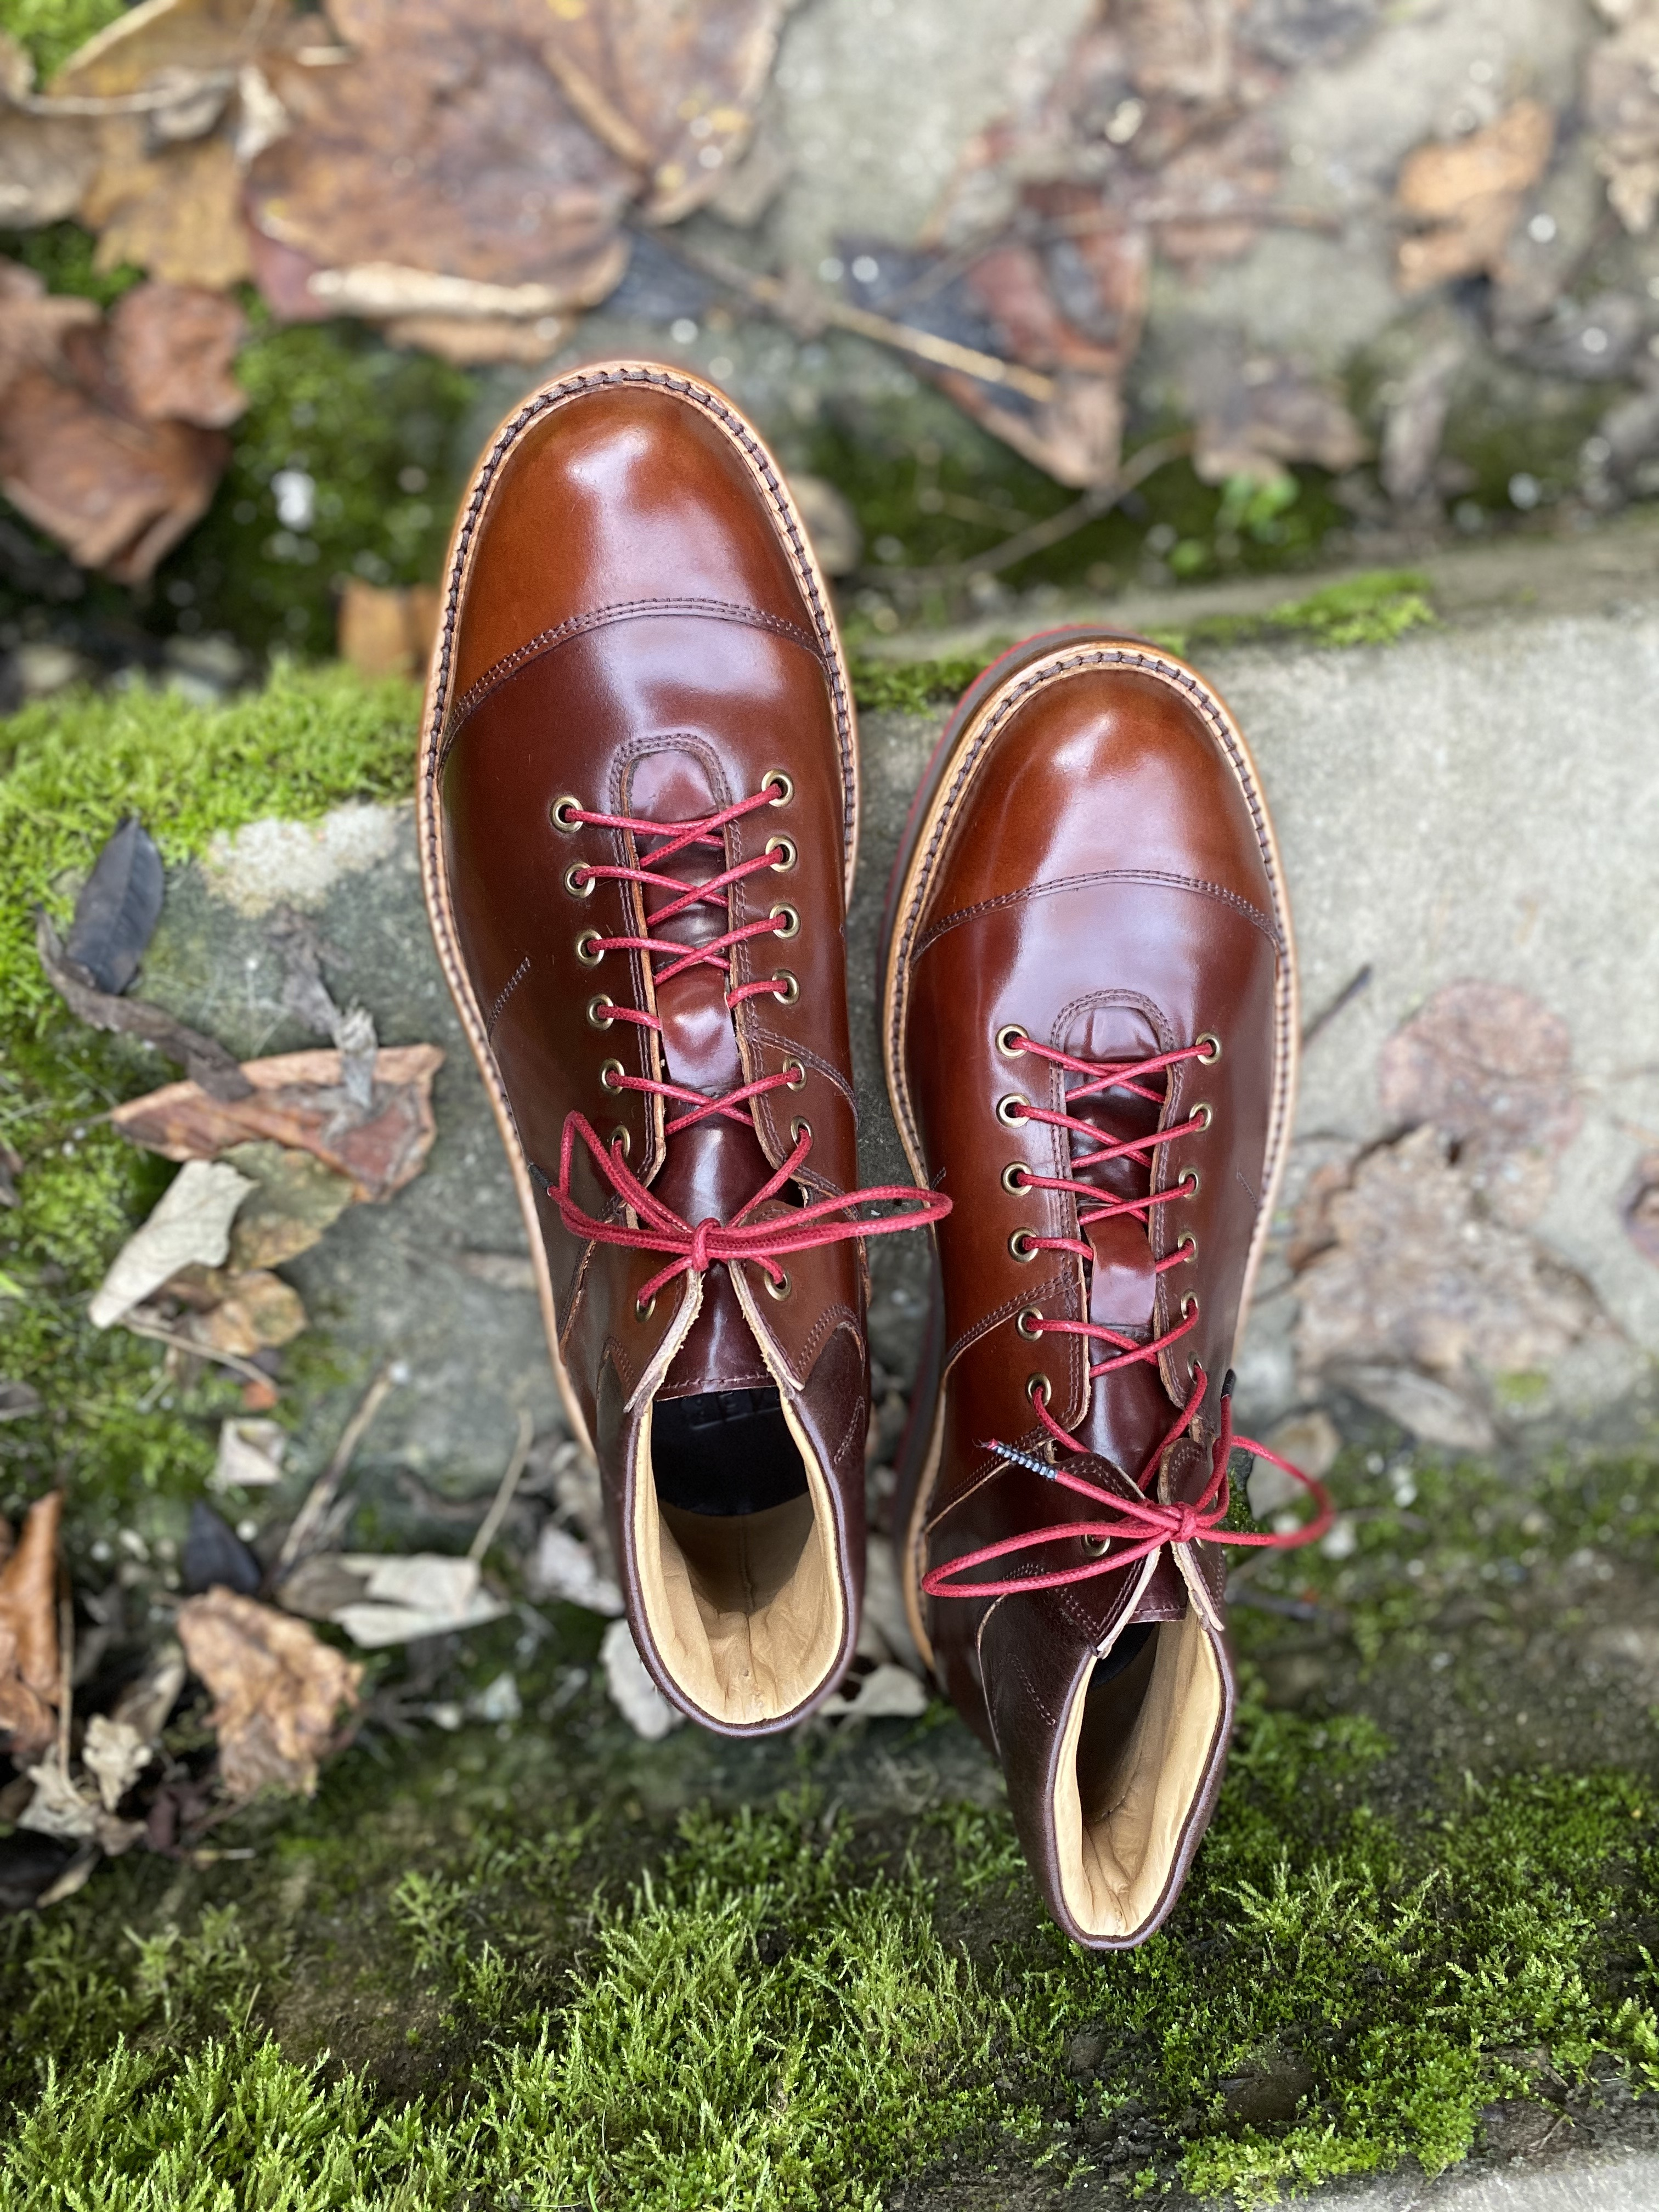 Horween shell cordovan sneakers 8